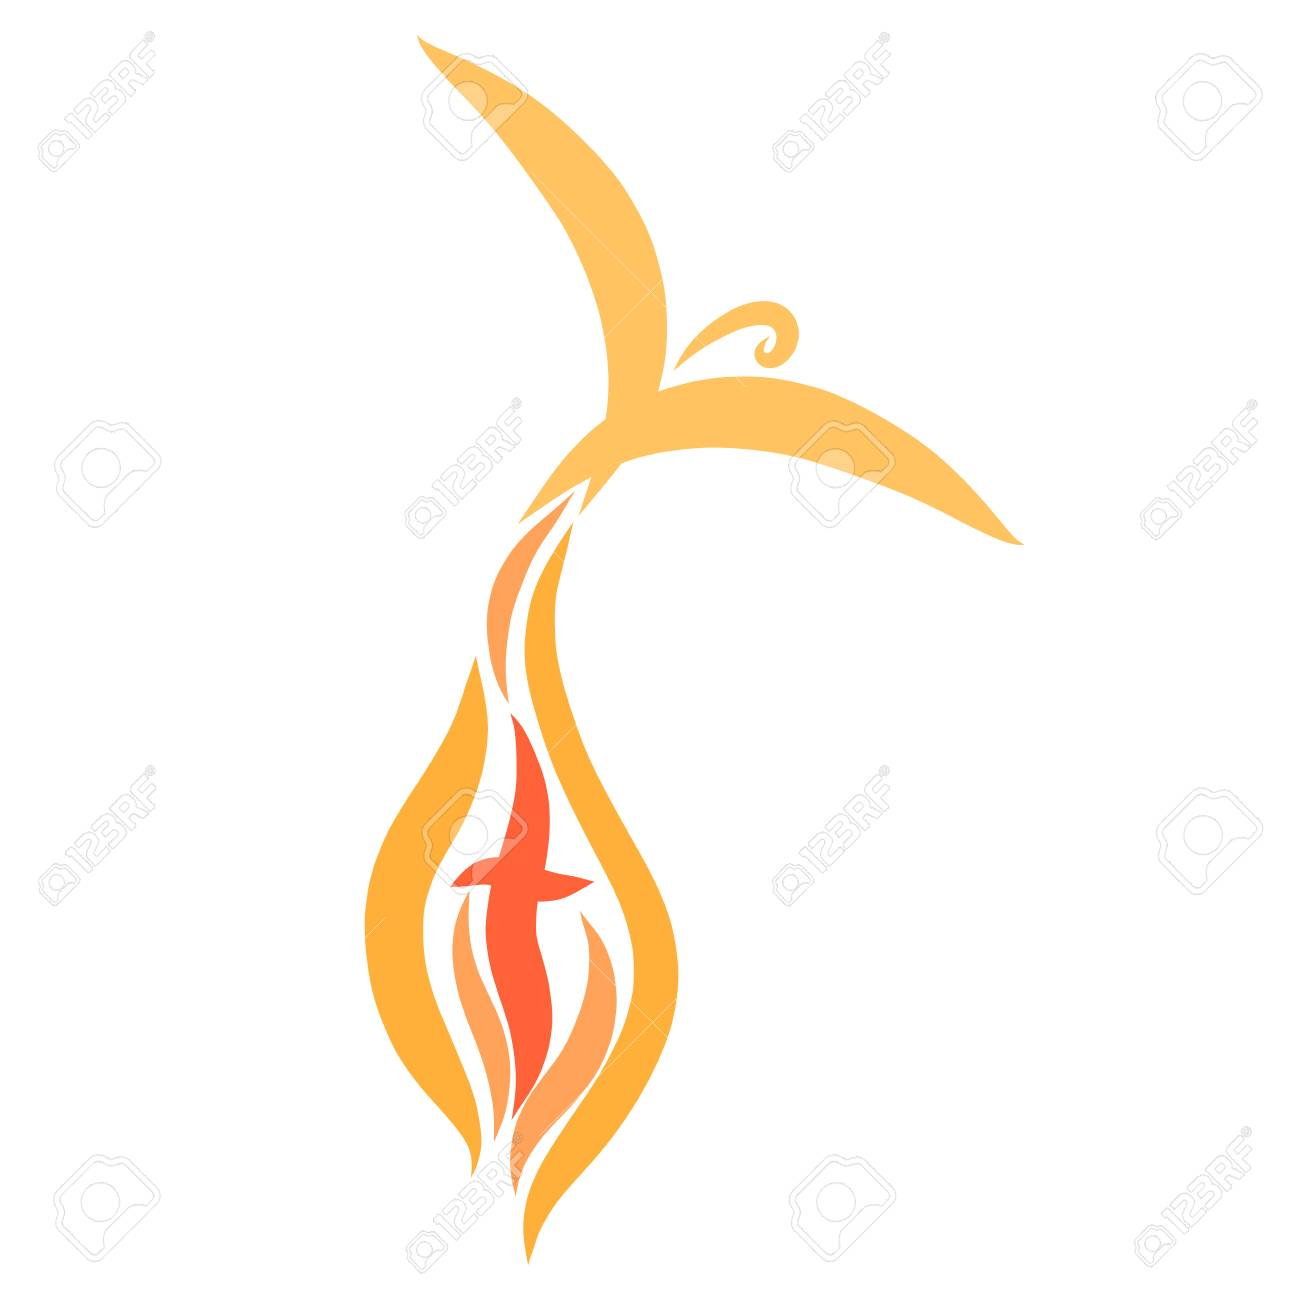 bird flying out of flame and cross - 121712465